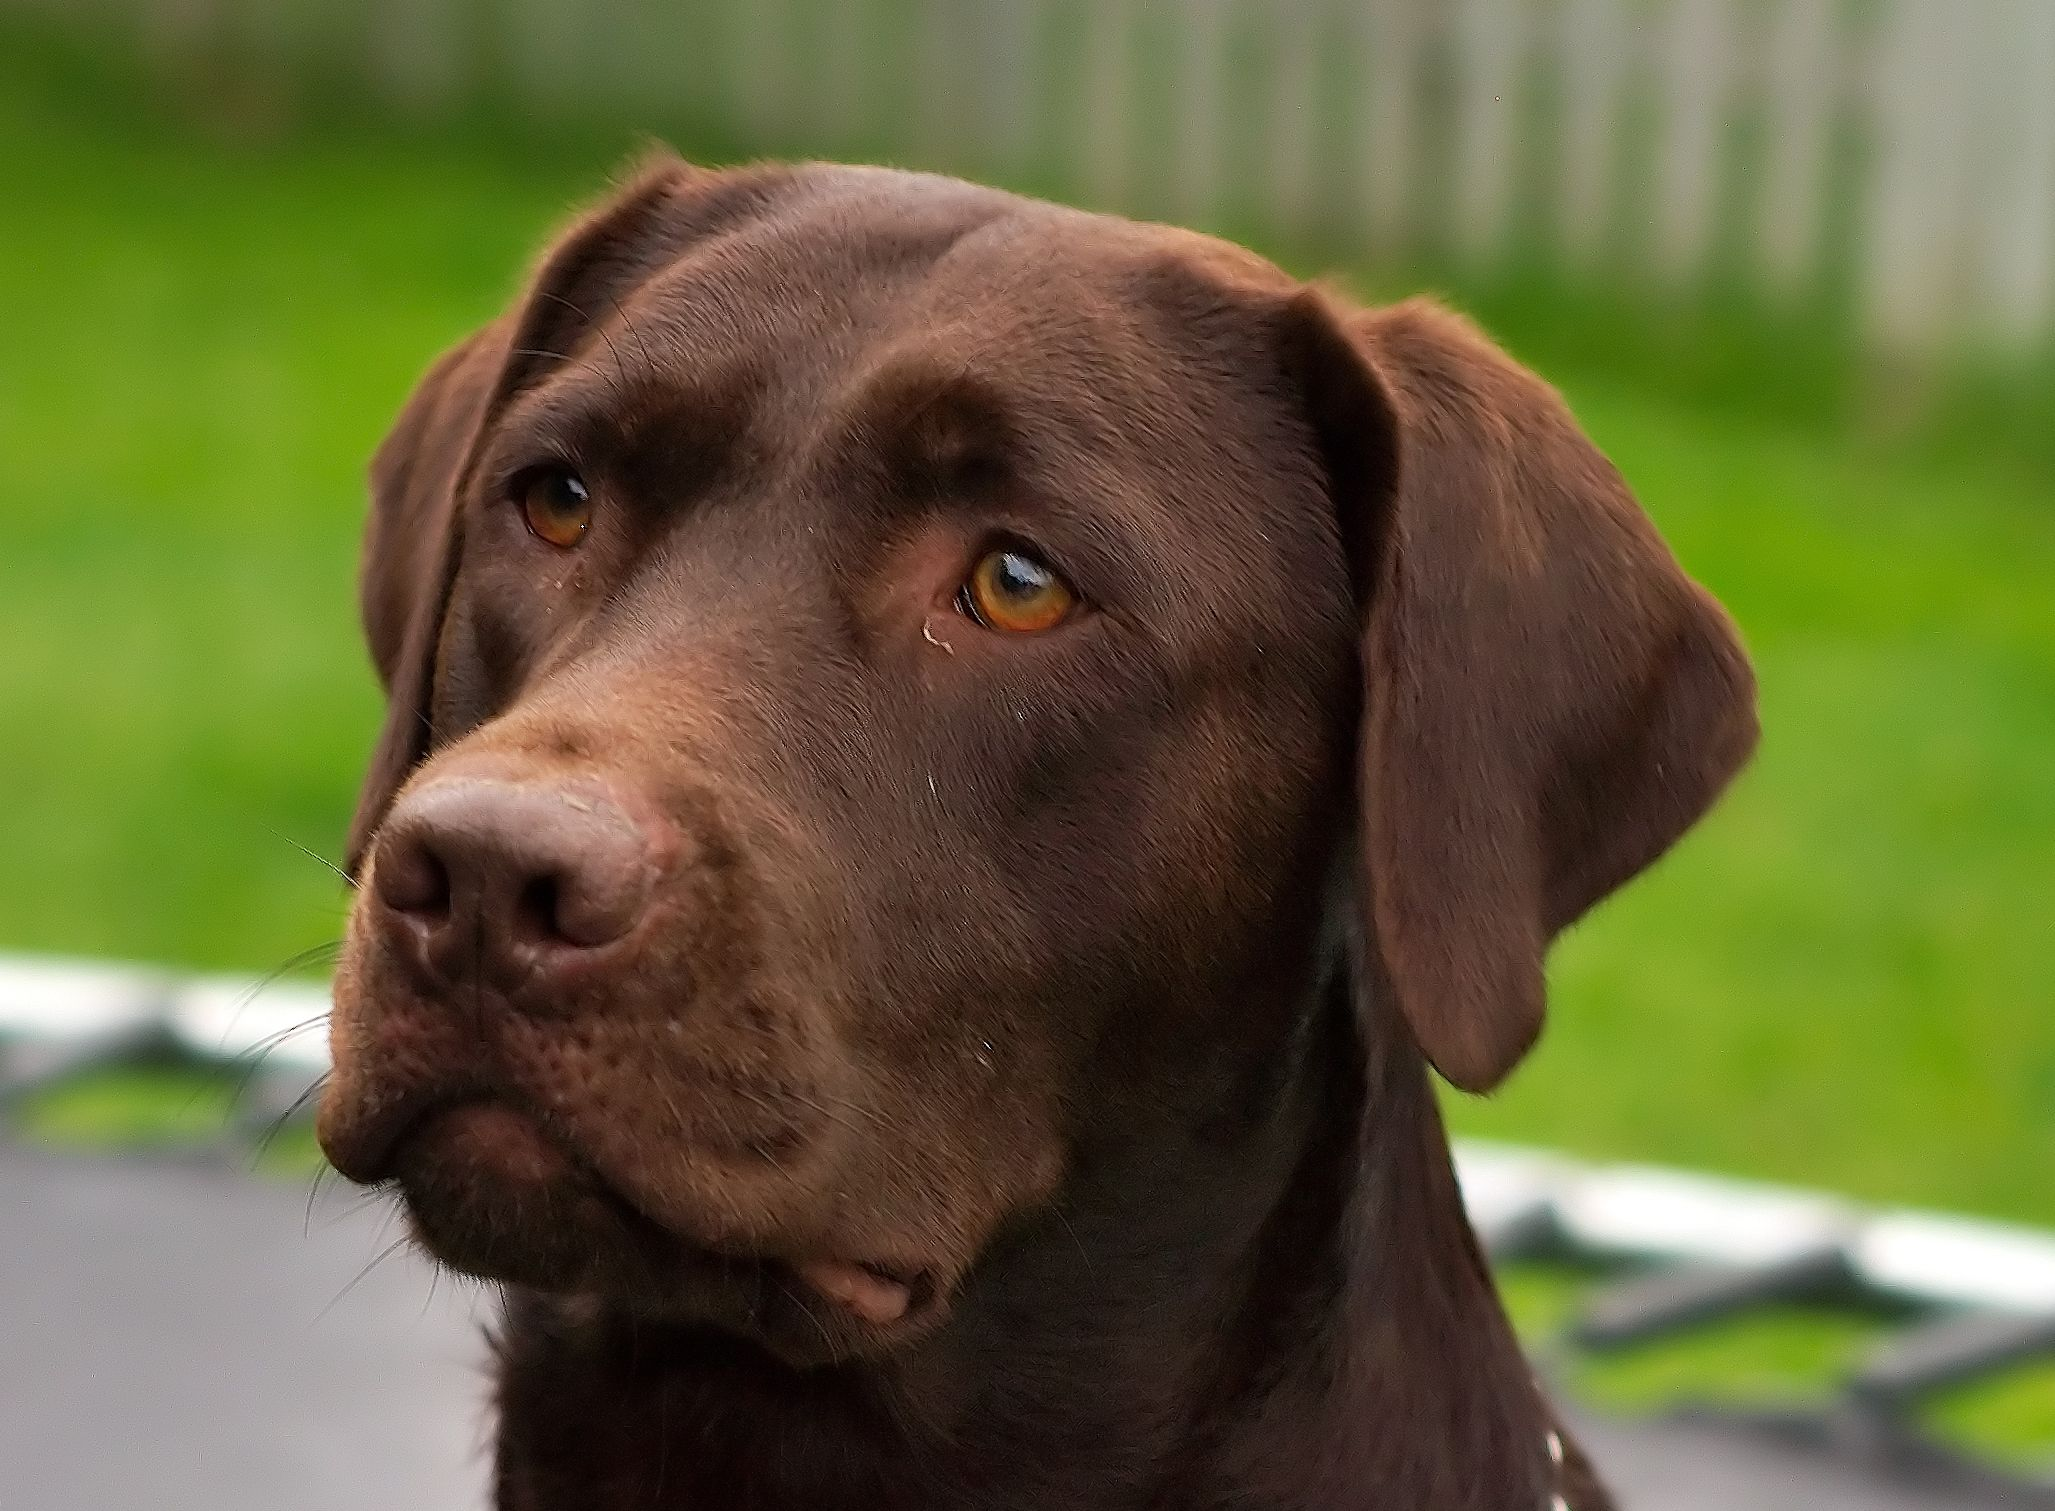 In Labradors this color is called Chocolate but it is the same